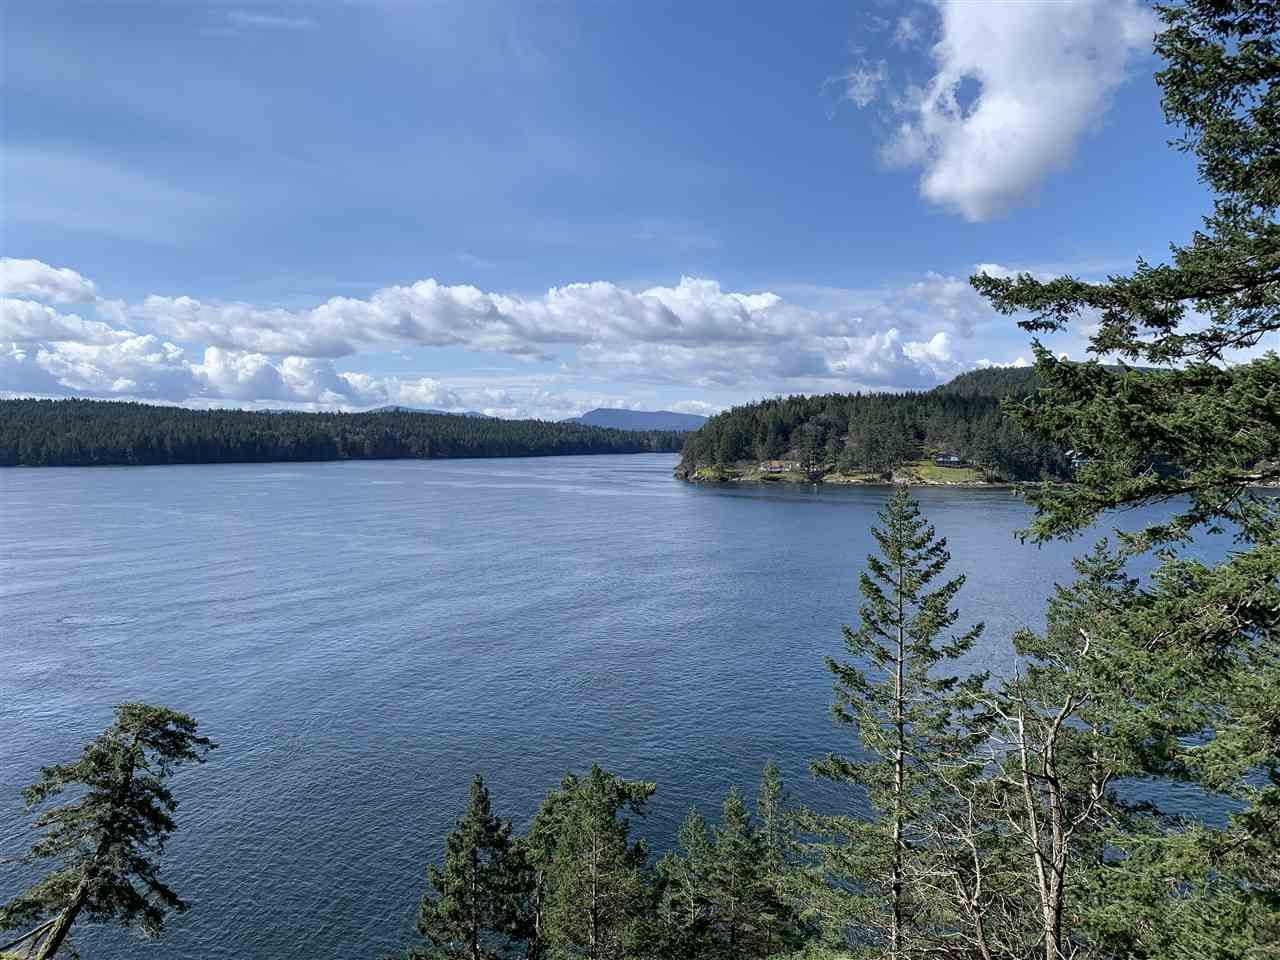 Main Photo: 277 LAURA POINT Road: Mayne Island Land for sale (Islands-Van. & Gulf)  : MLS®# R2554109